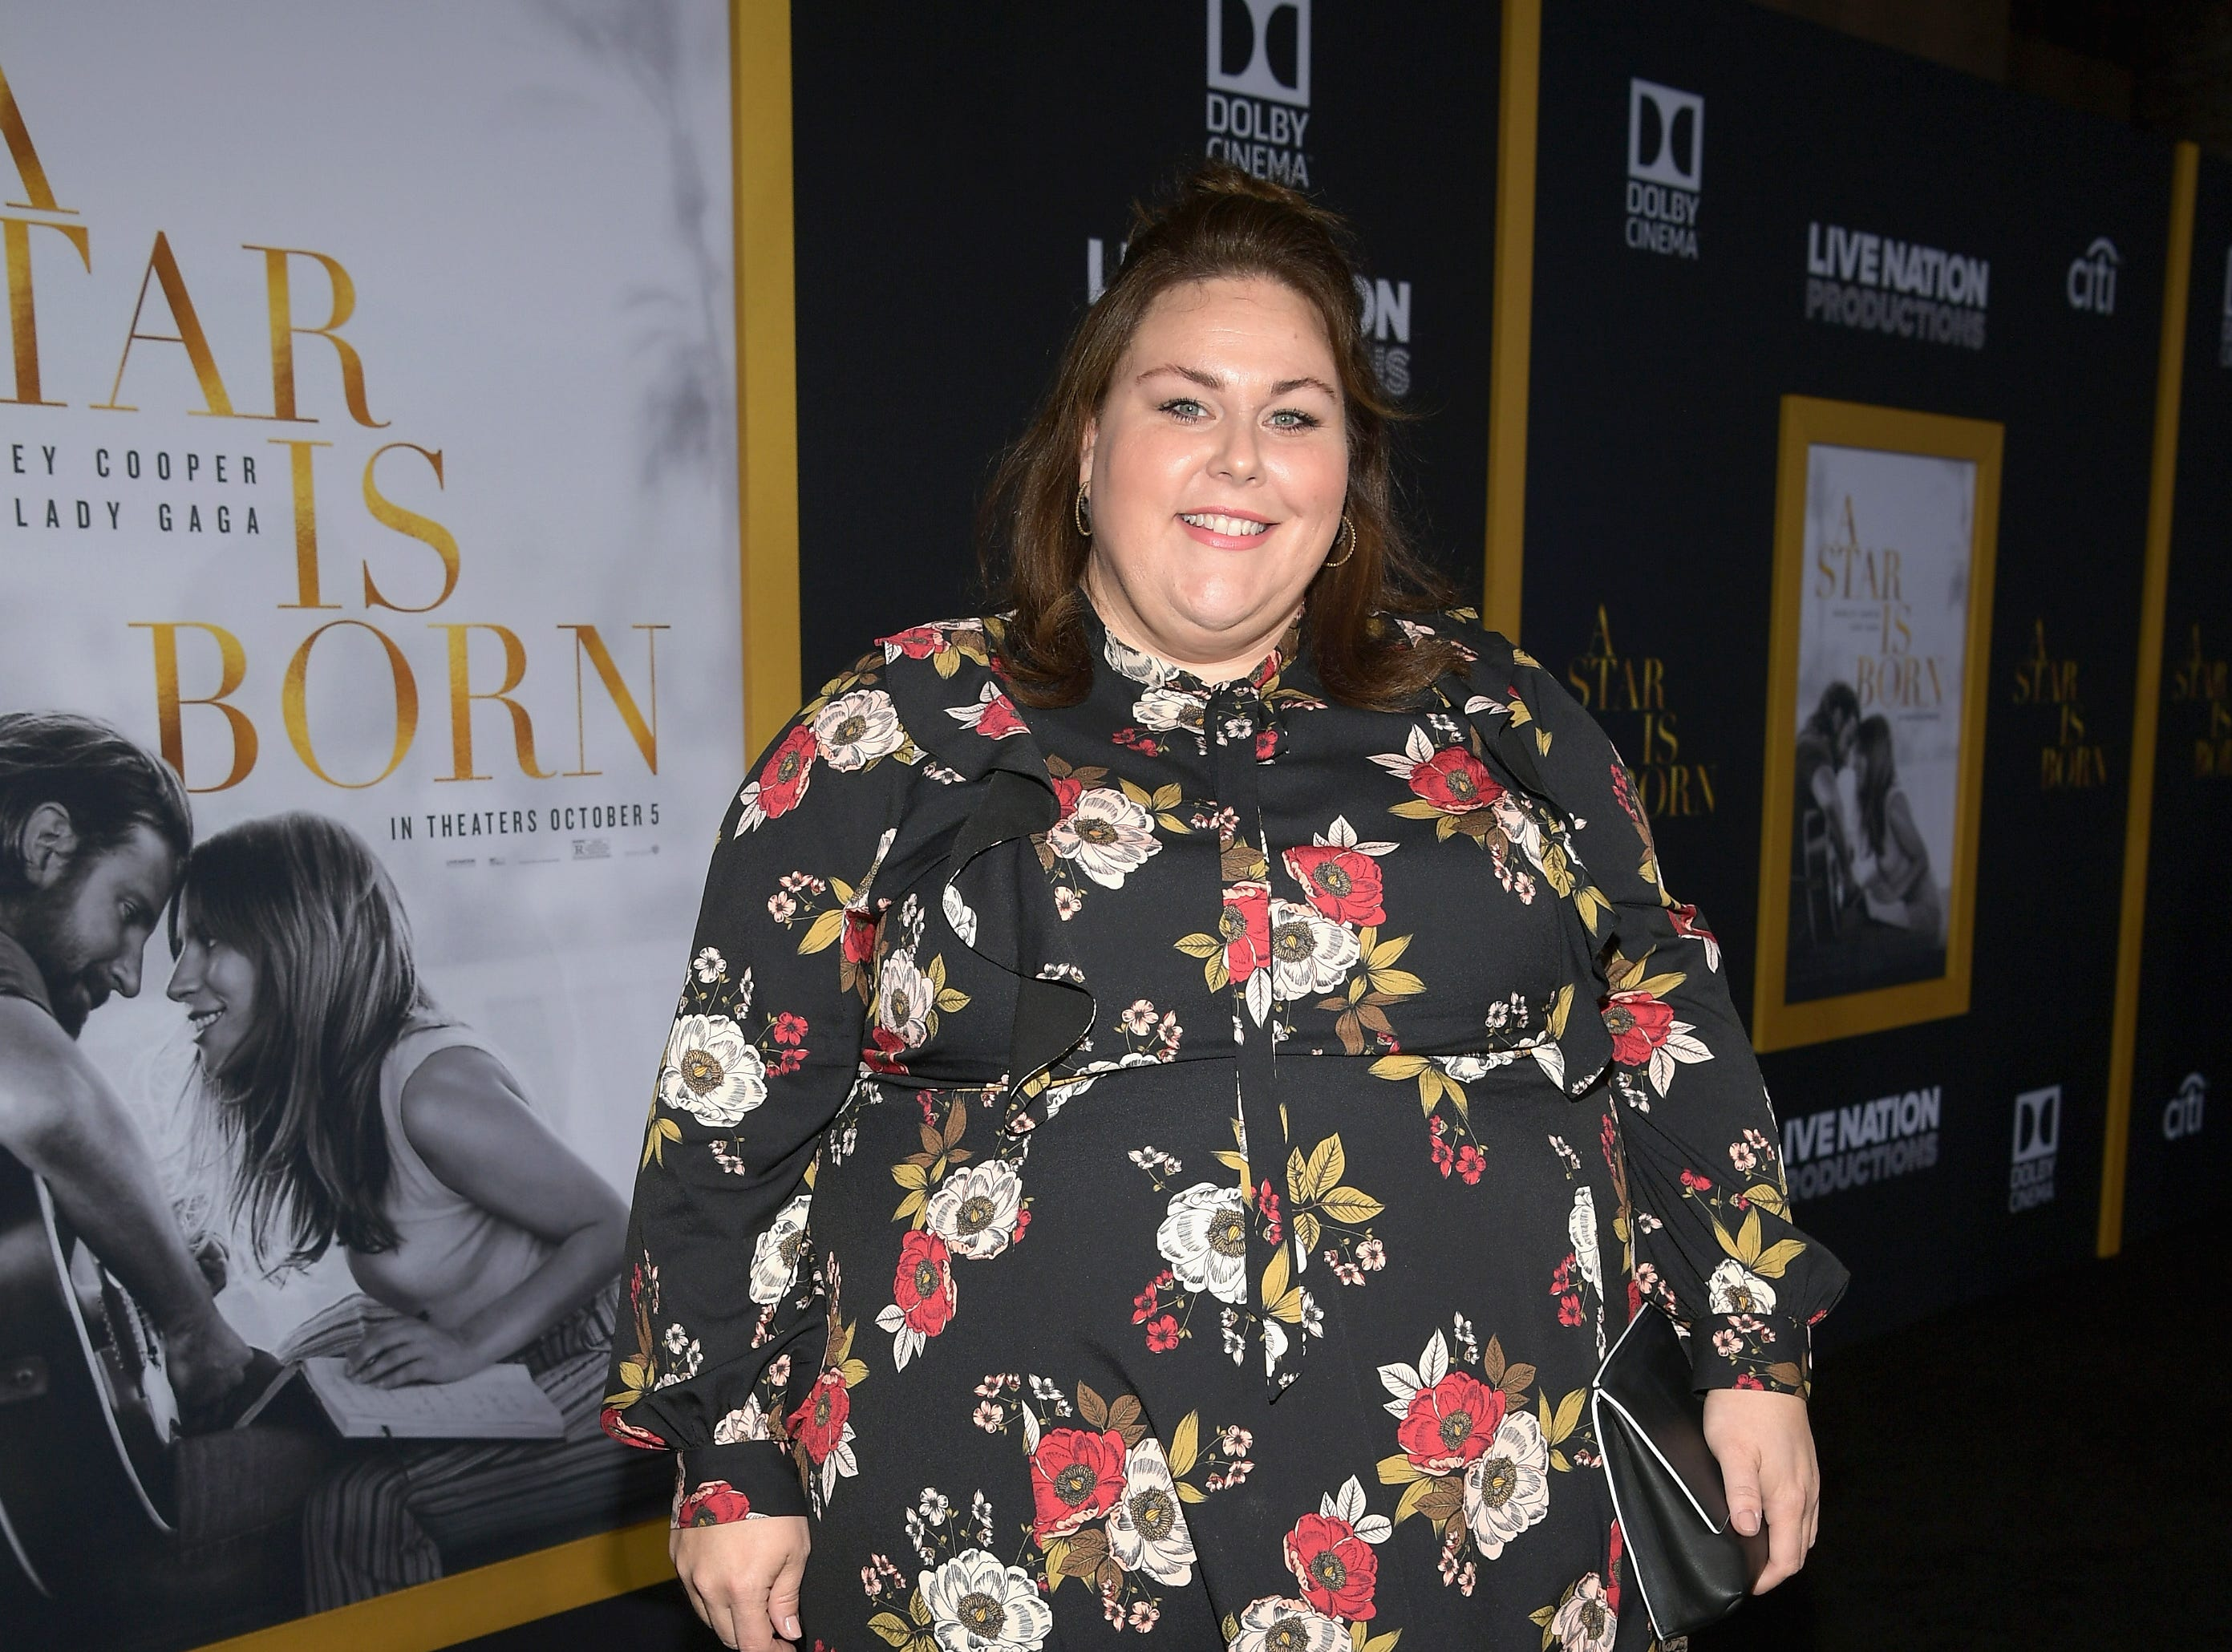 "LOS ANGELES, CA - SEPTEMBER 24:  Chrissy Metz arrives on the red carpet at the Premiere Of Warner Bros. Pictures' ""A Star Is Born"" at The Shrine Auditorium on September 24, 2018 in Los Angeles, California.  (Photo by Emma McIntyre/Getty Images) ORG XMIT: 775229471 ORIG FILE ID: 1039666228"